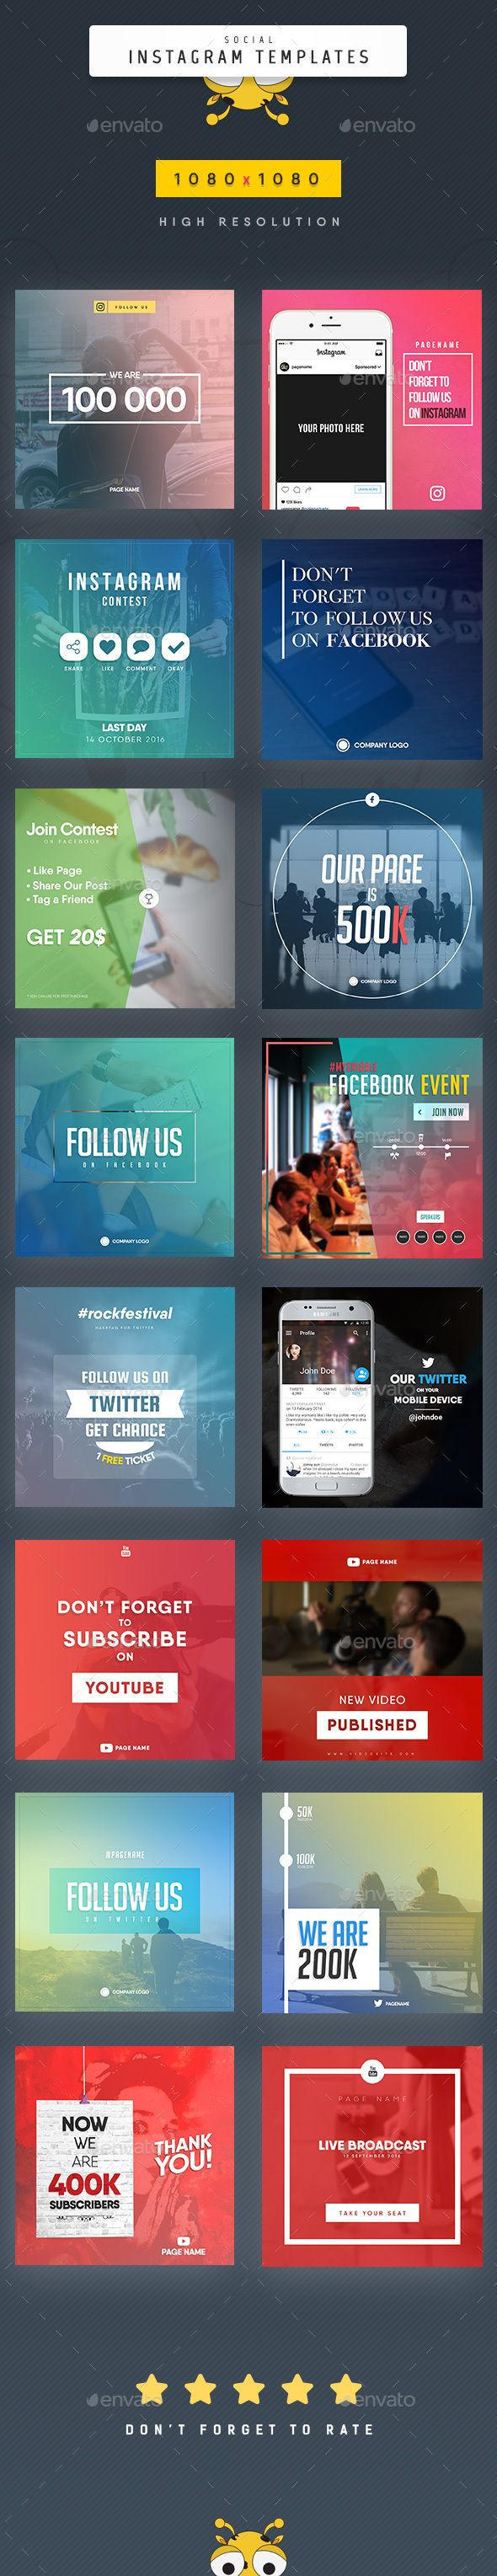 Pin By Best Graphic Design On Instagram Banners Templates